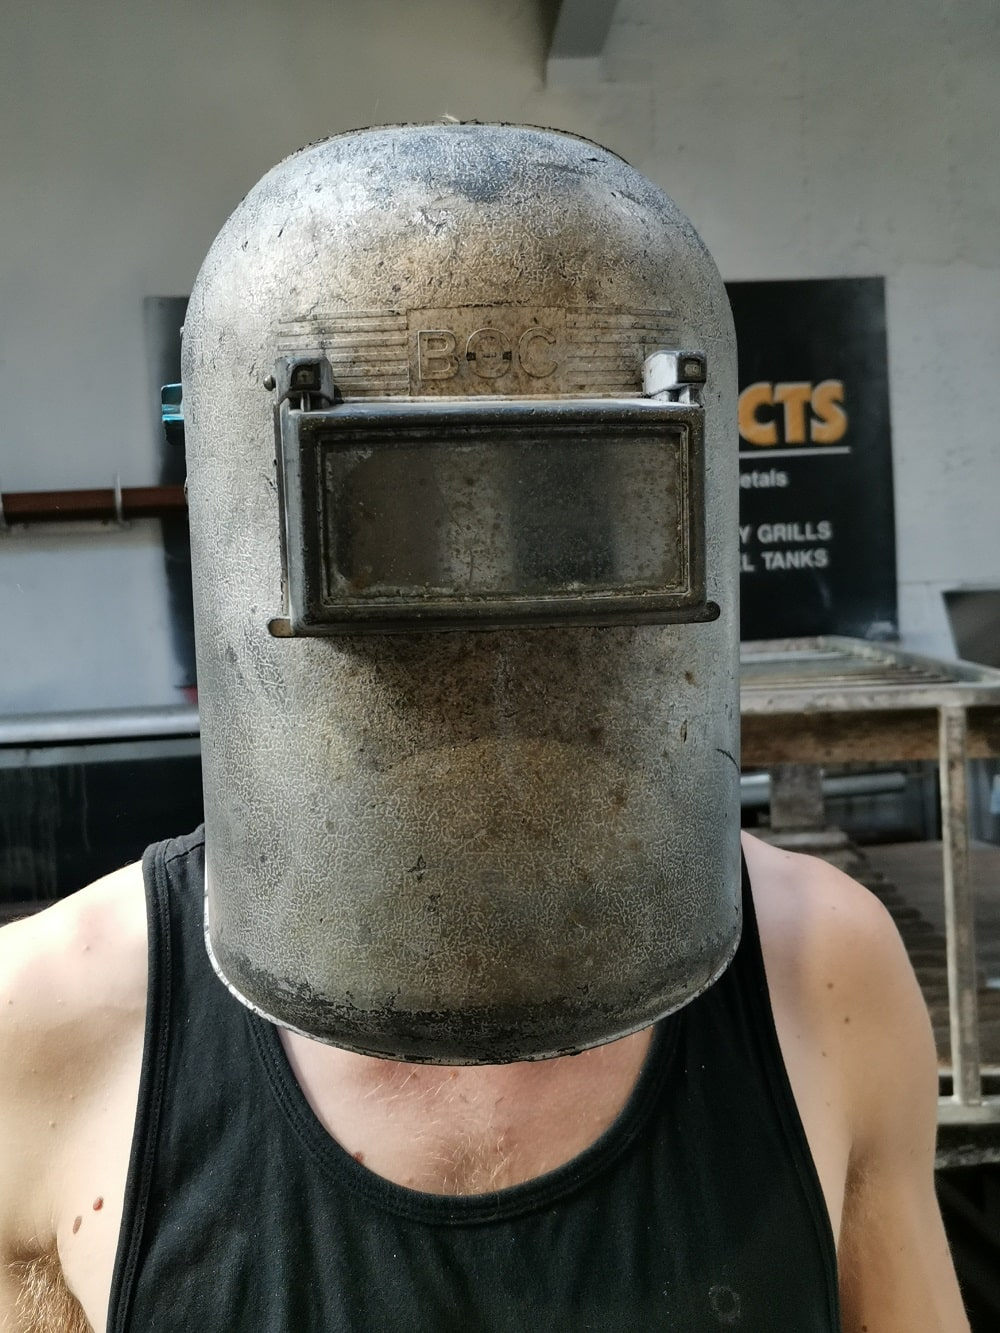 Wearing welding face sheild